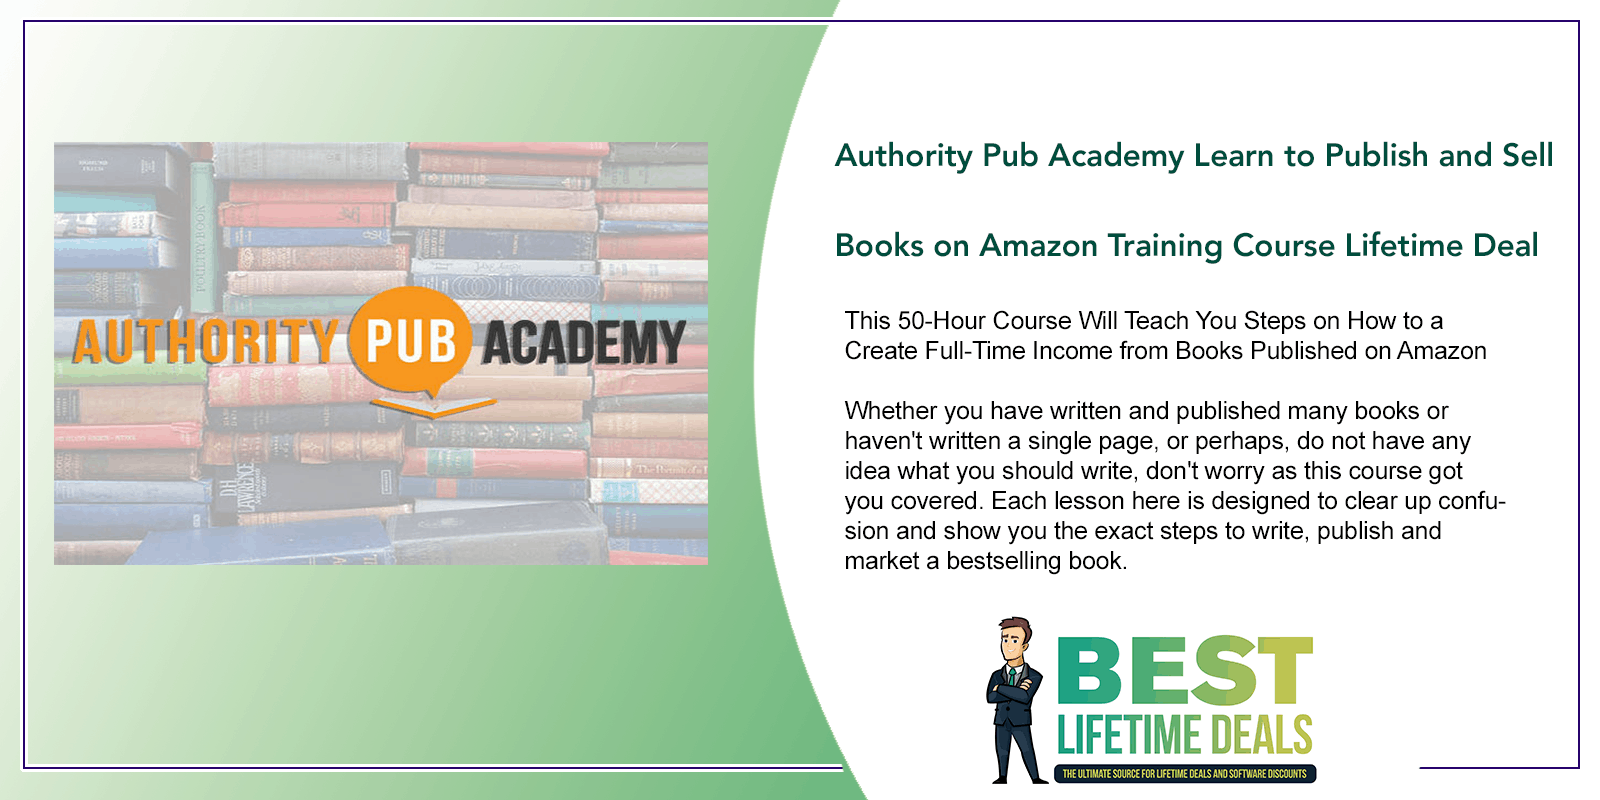 Authority Pub Academy Learn to Publish and Sell